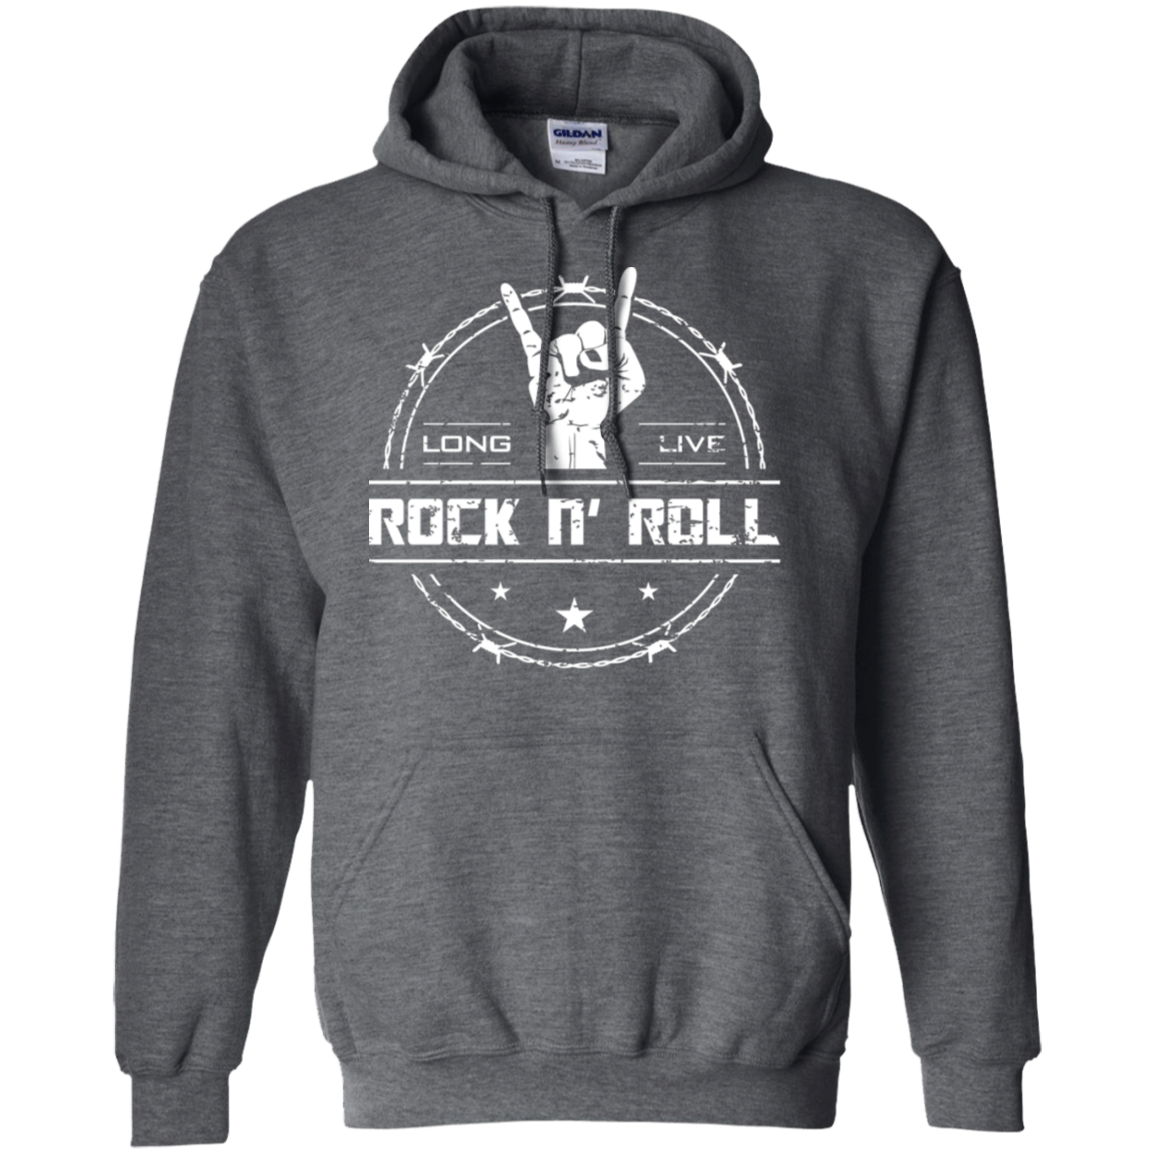 cool long live rock and roll hoodie